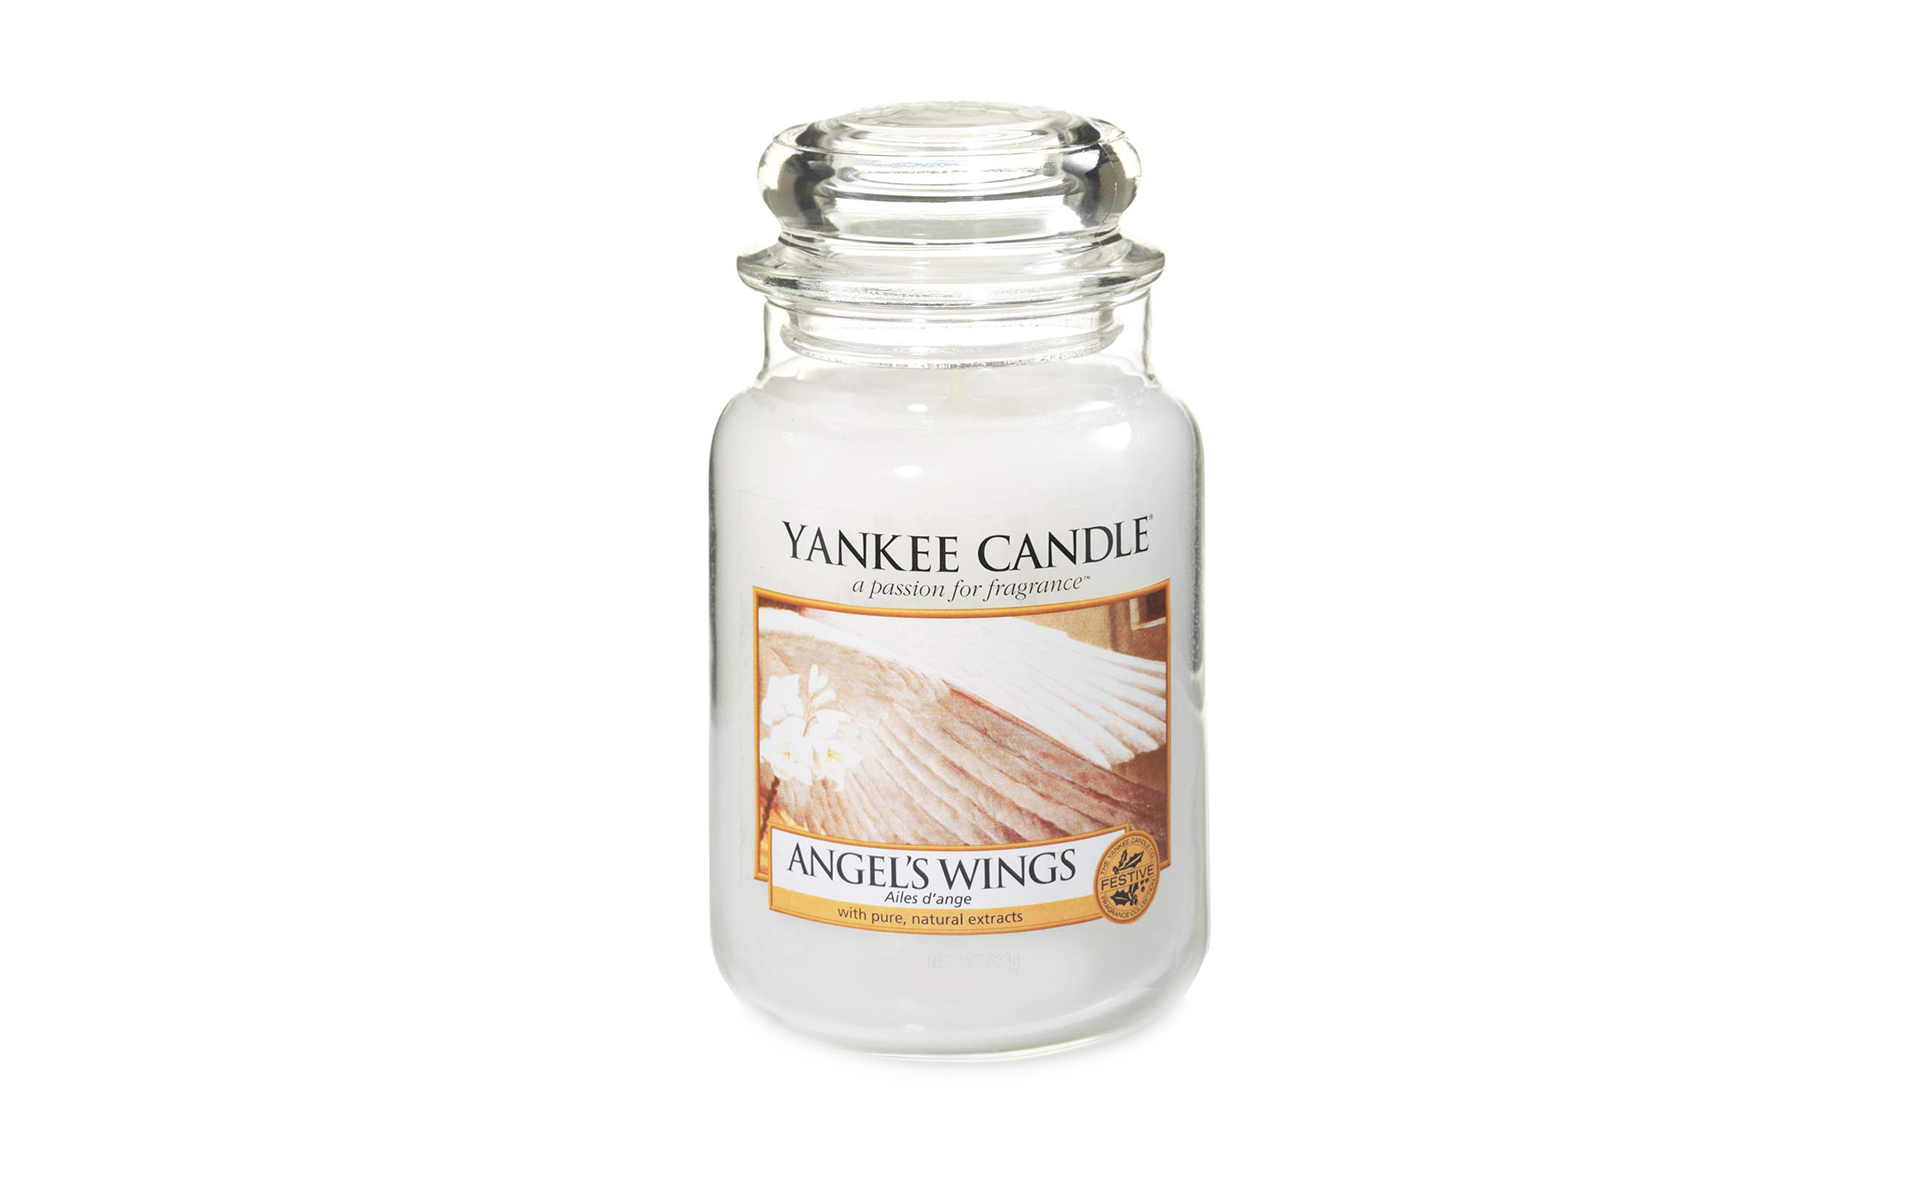 Yankee Candle Vela Perfumada Angel's Wings